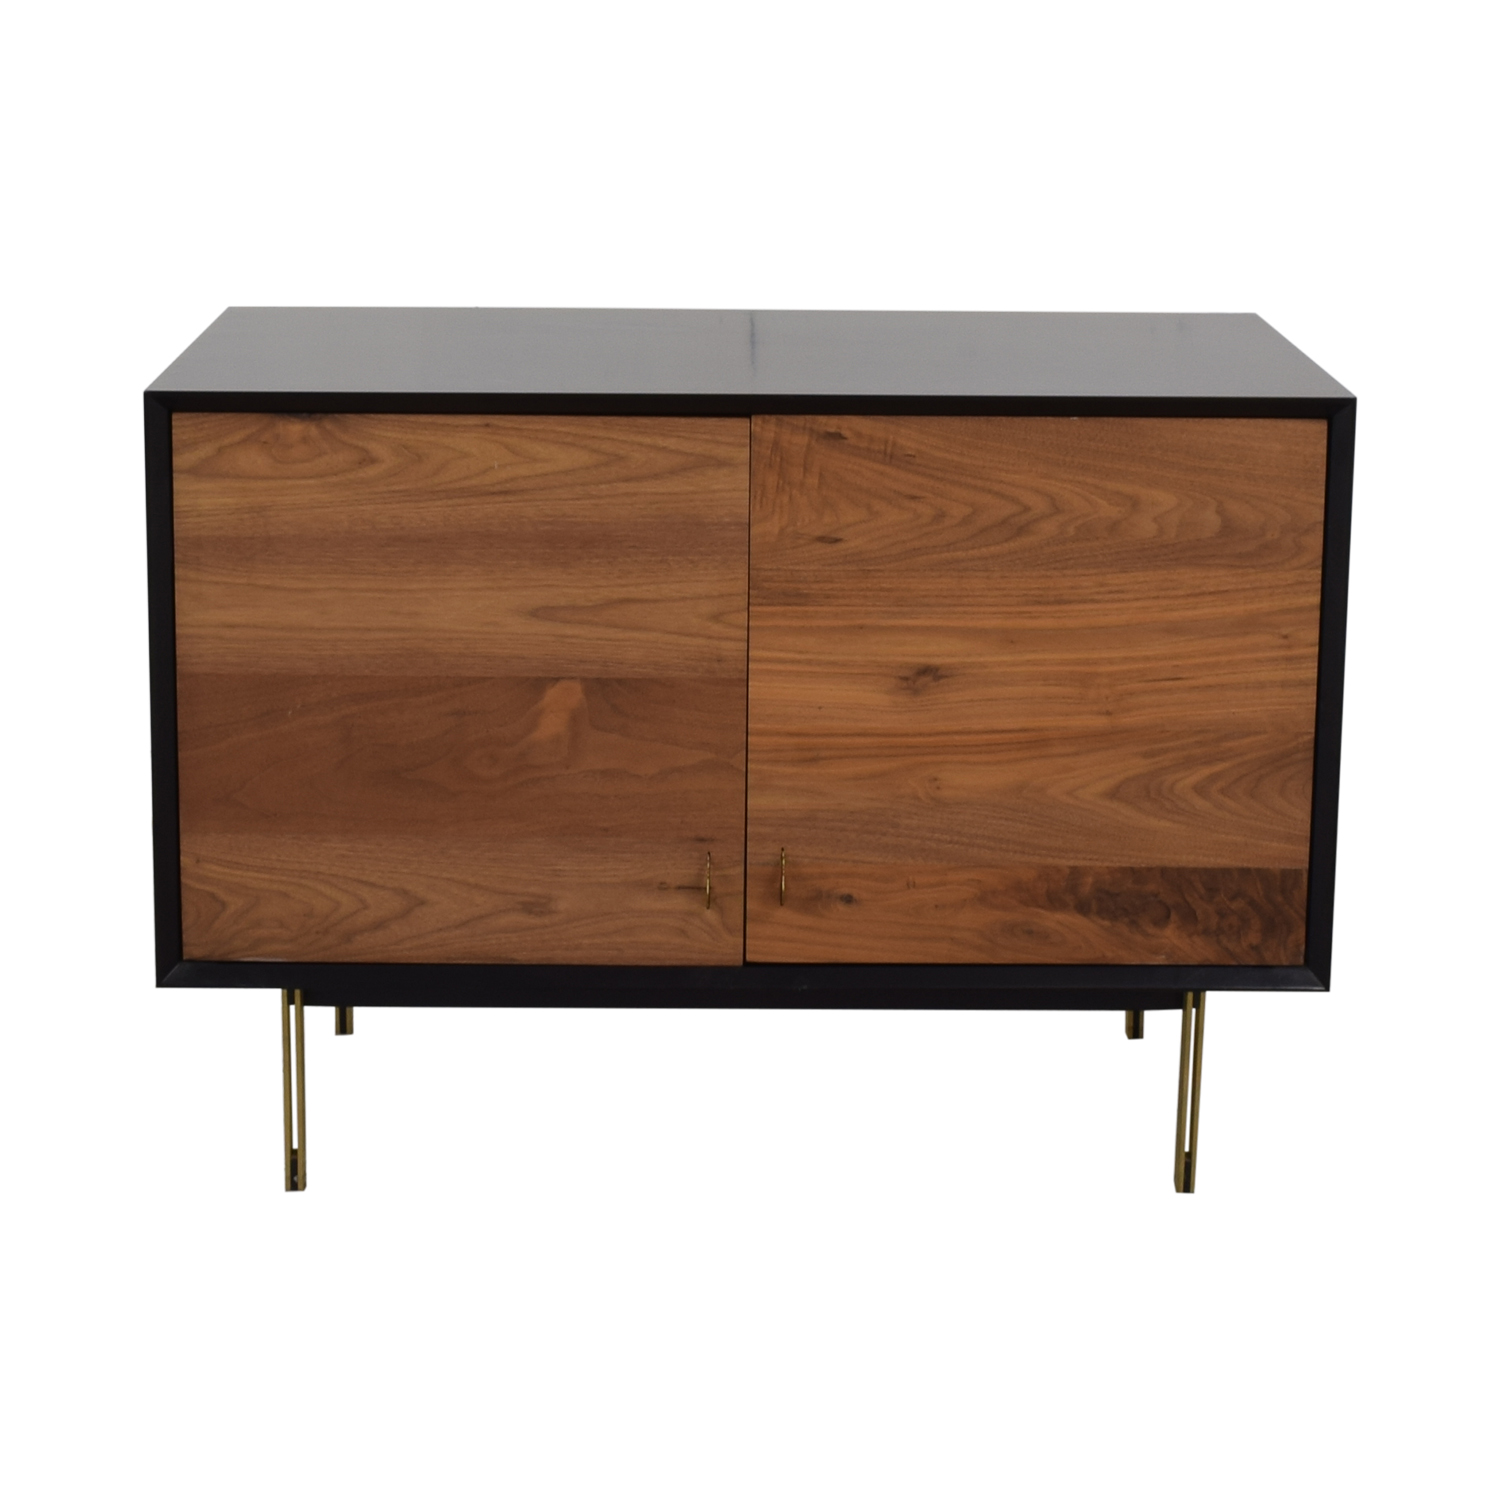 shop Organic Modernism Custom Made Wood Media Cabinet Organic Modernism Storage